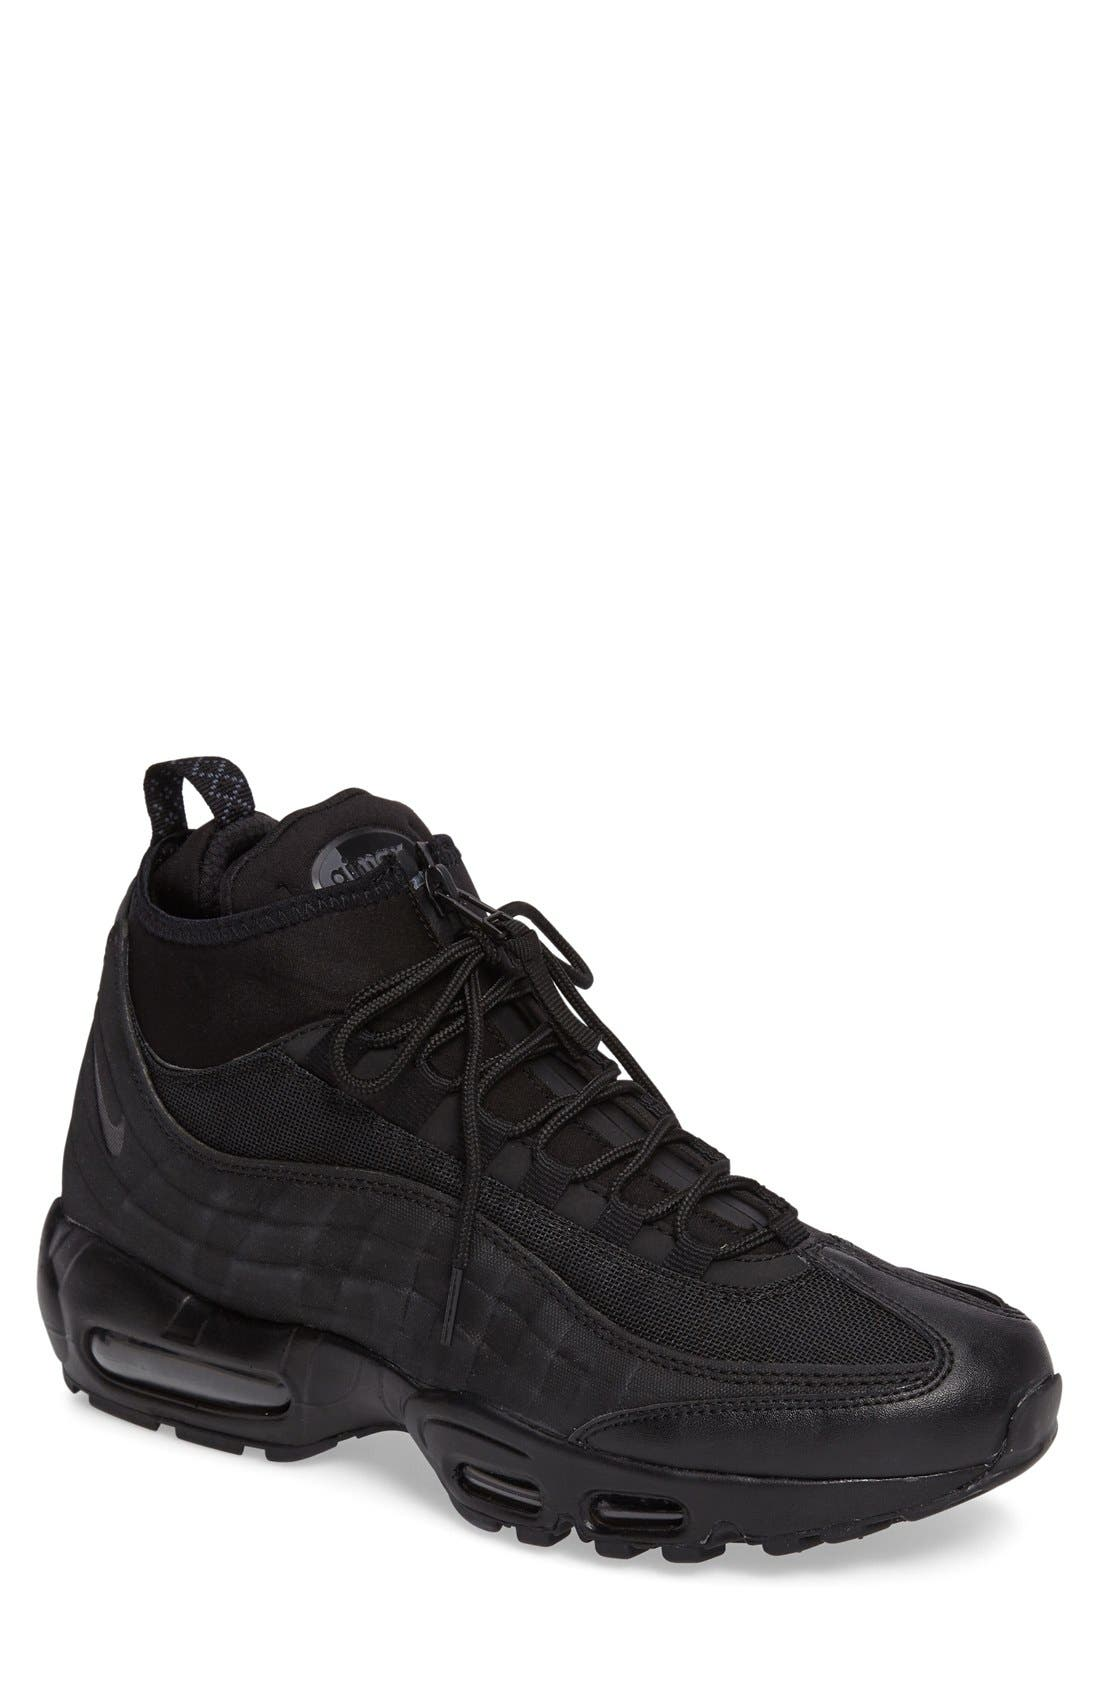 Main Image - Nike Air Max 95 Water-Resistant Sneaker Boot (Men)